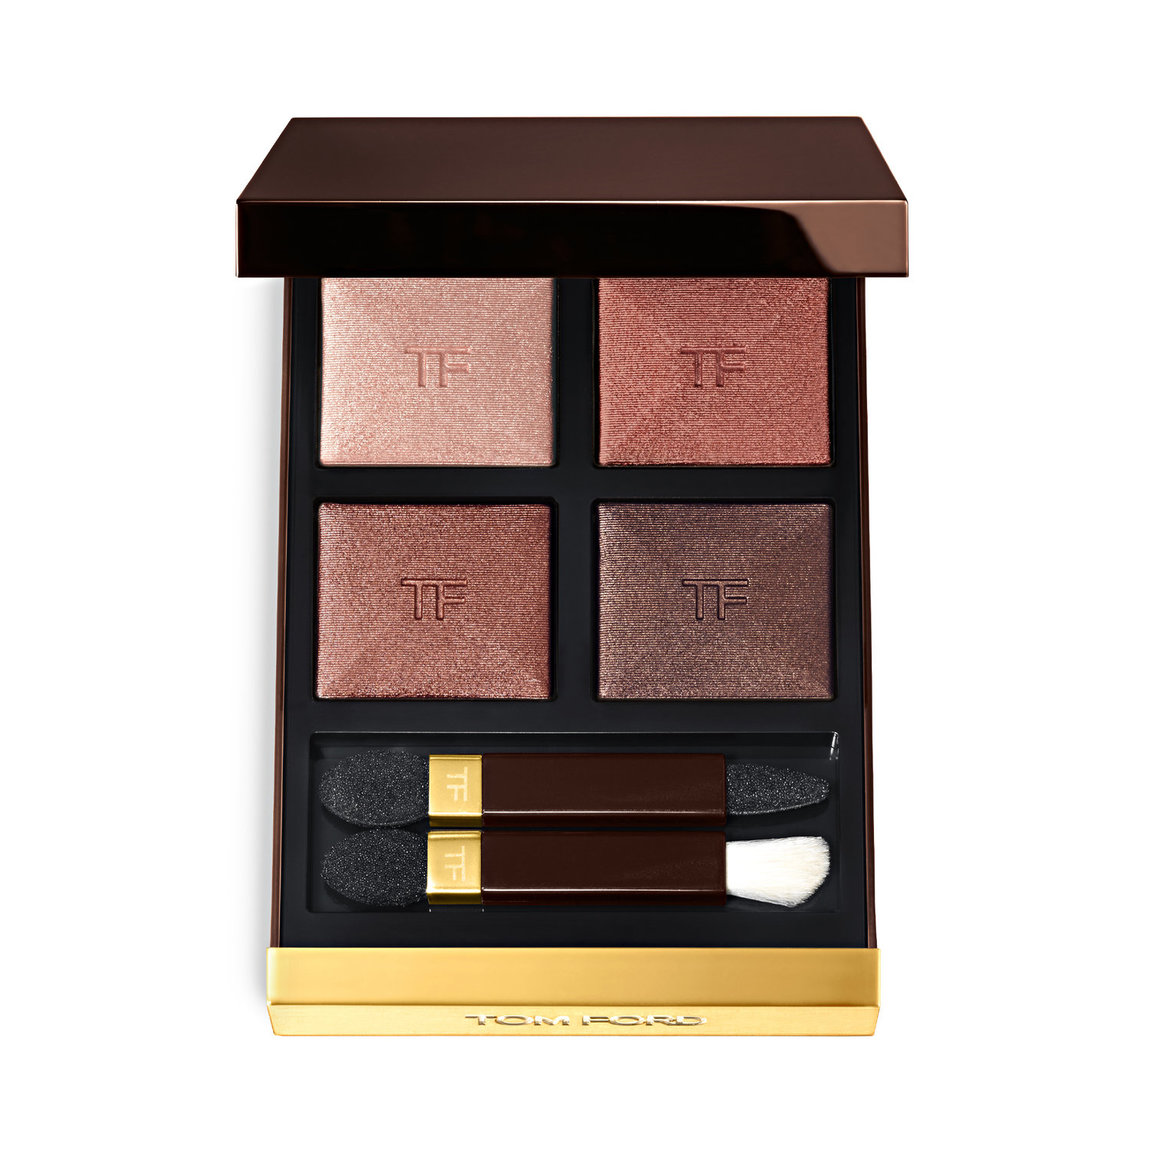 TOM FORD Eye Quad Body Heat product smear.